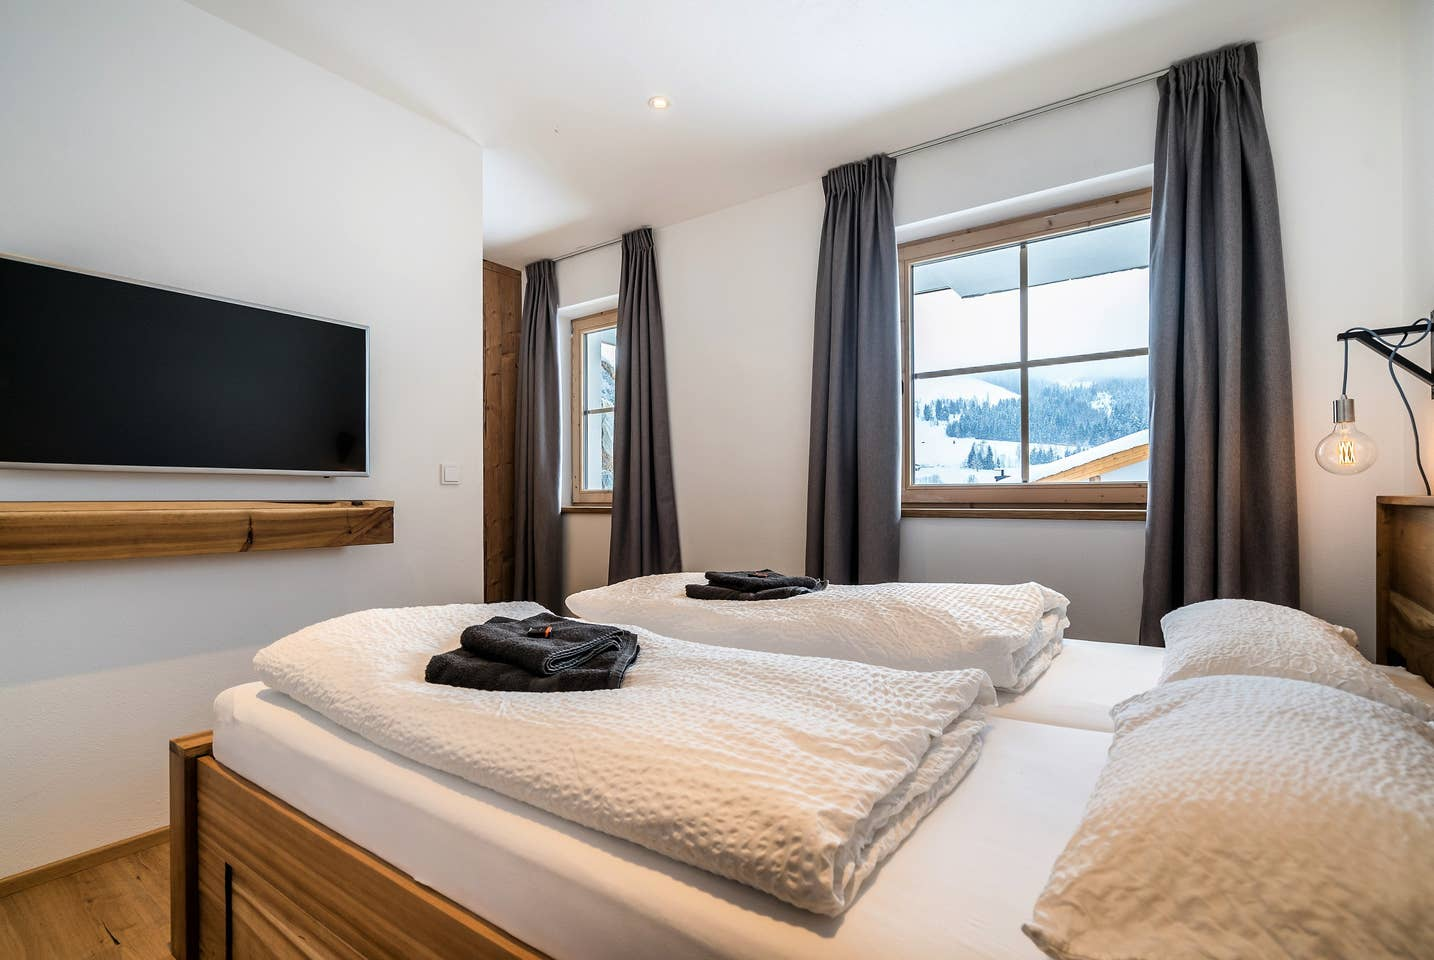 Double Room - with shared bathroom*only 1 room/ 2 spots left!510 € per person